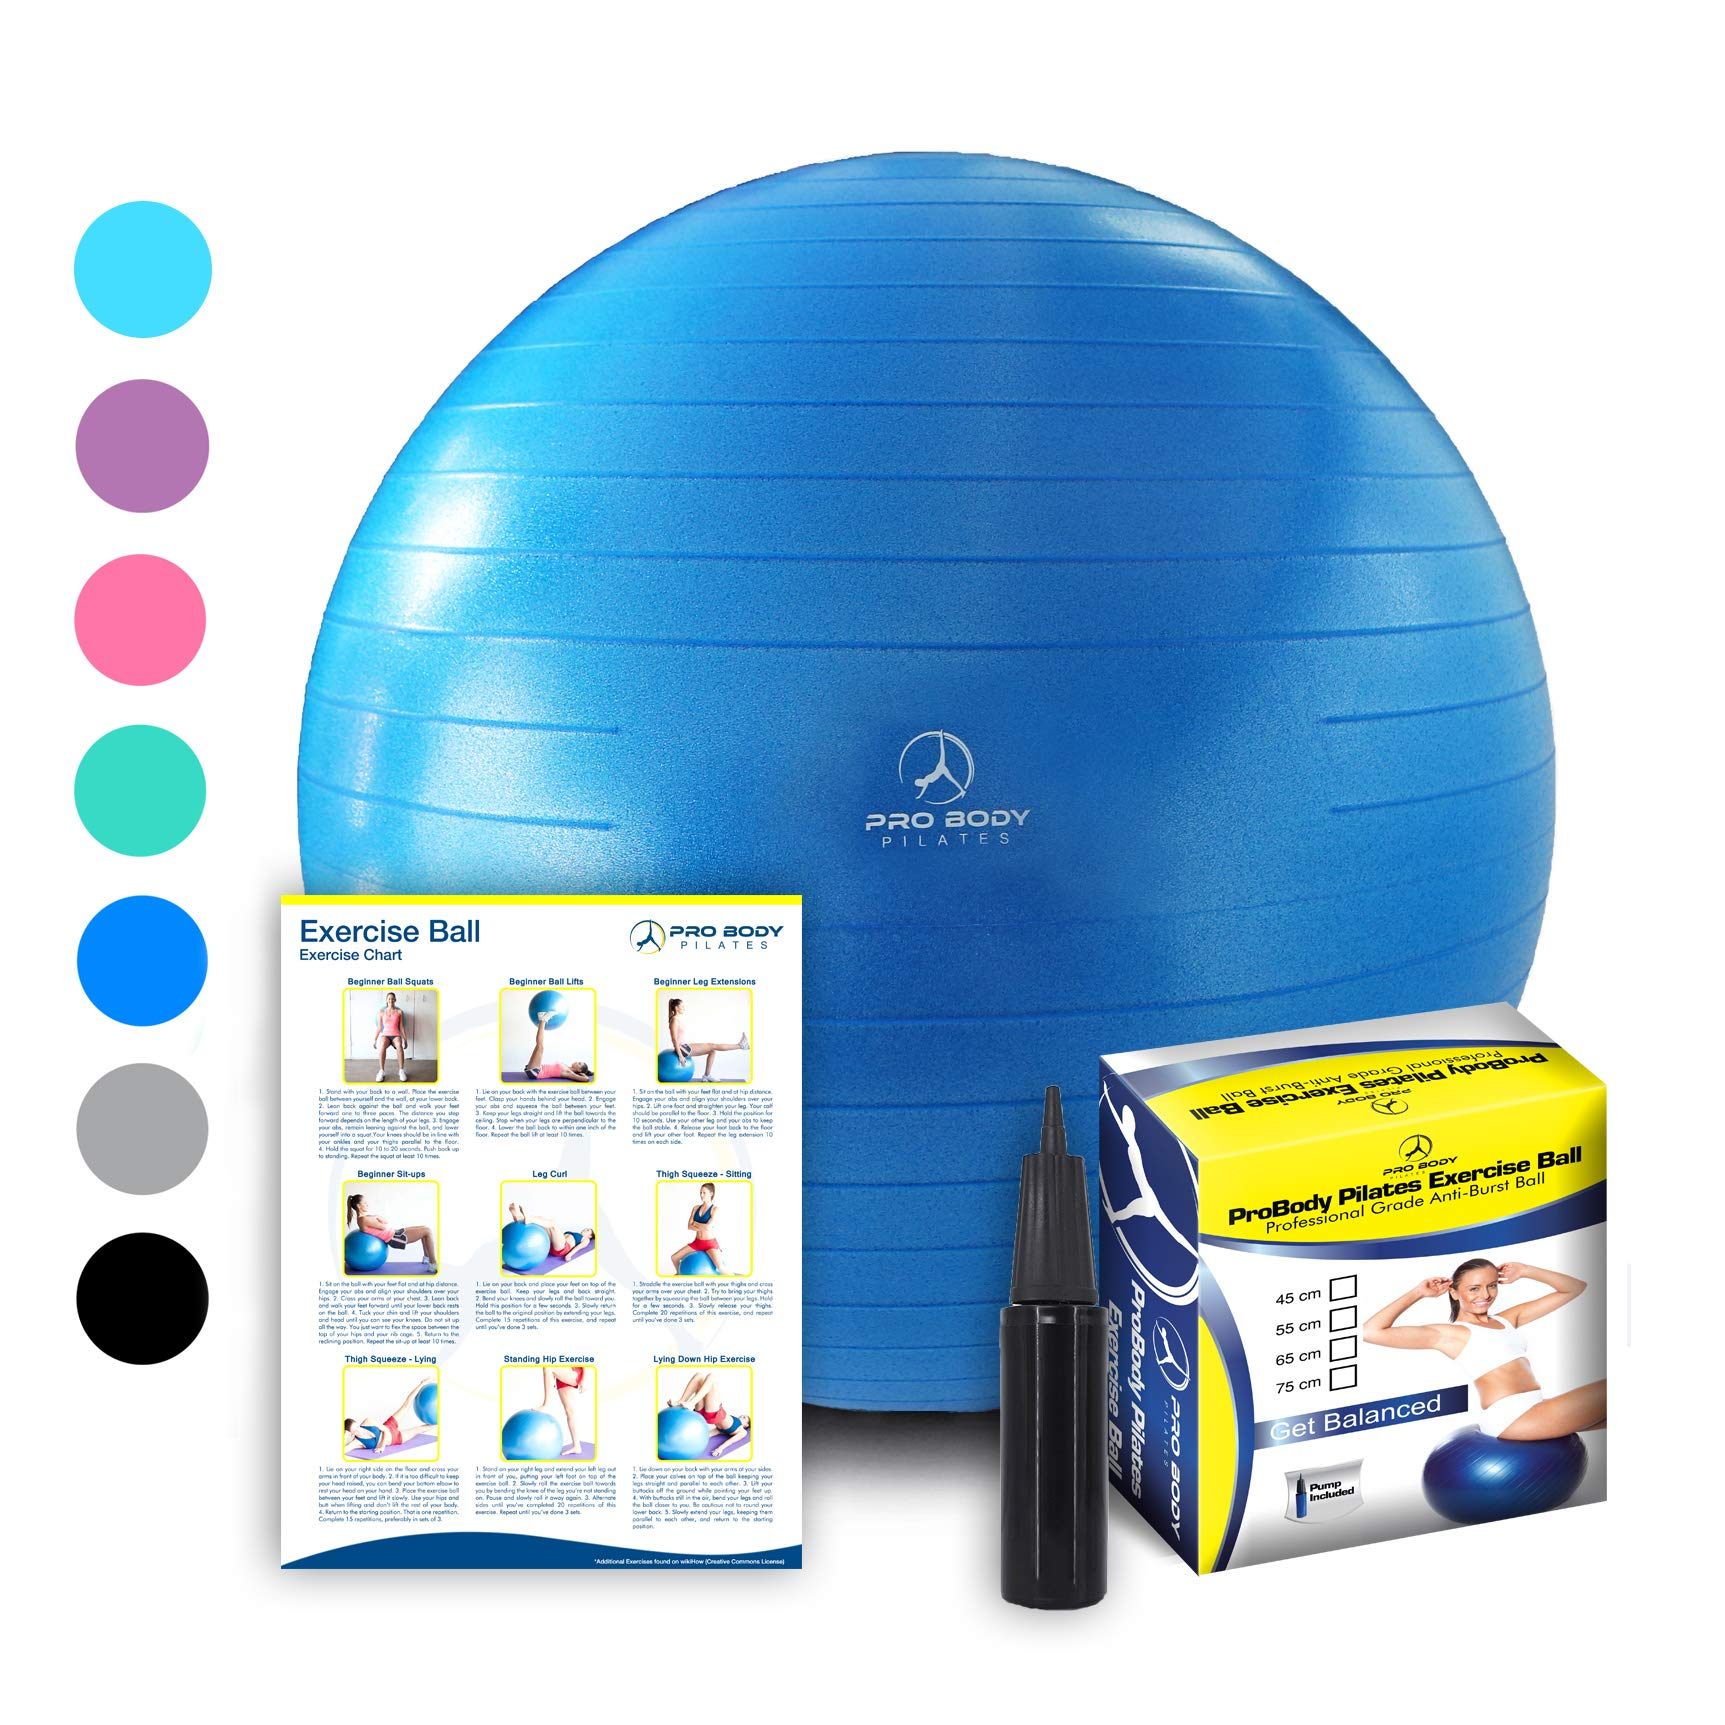 ProBody Pilates Exercise Ball, 65cm Dia - Blue